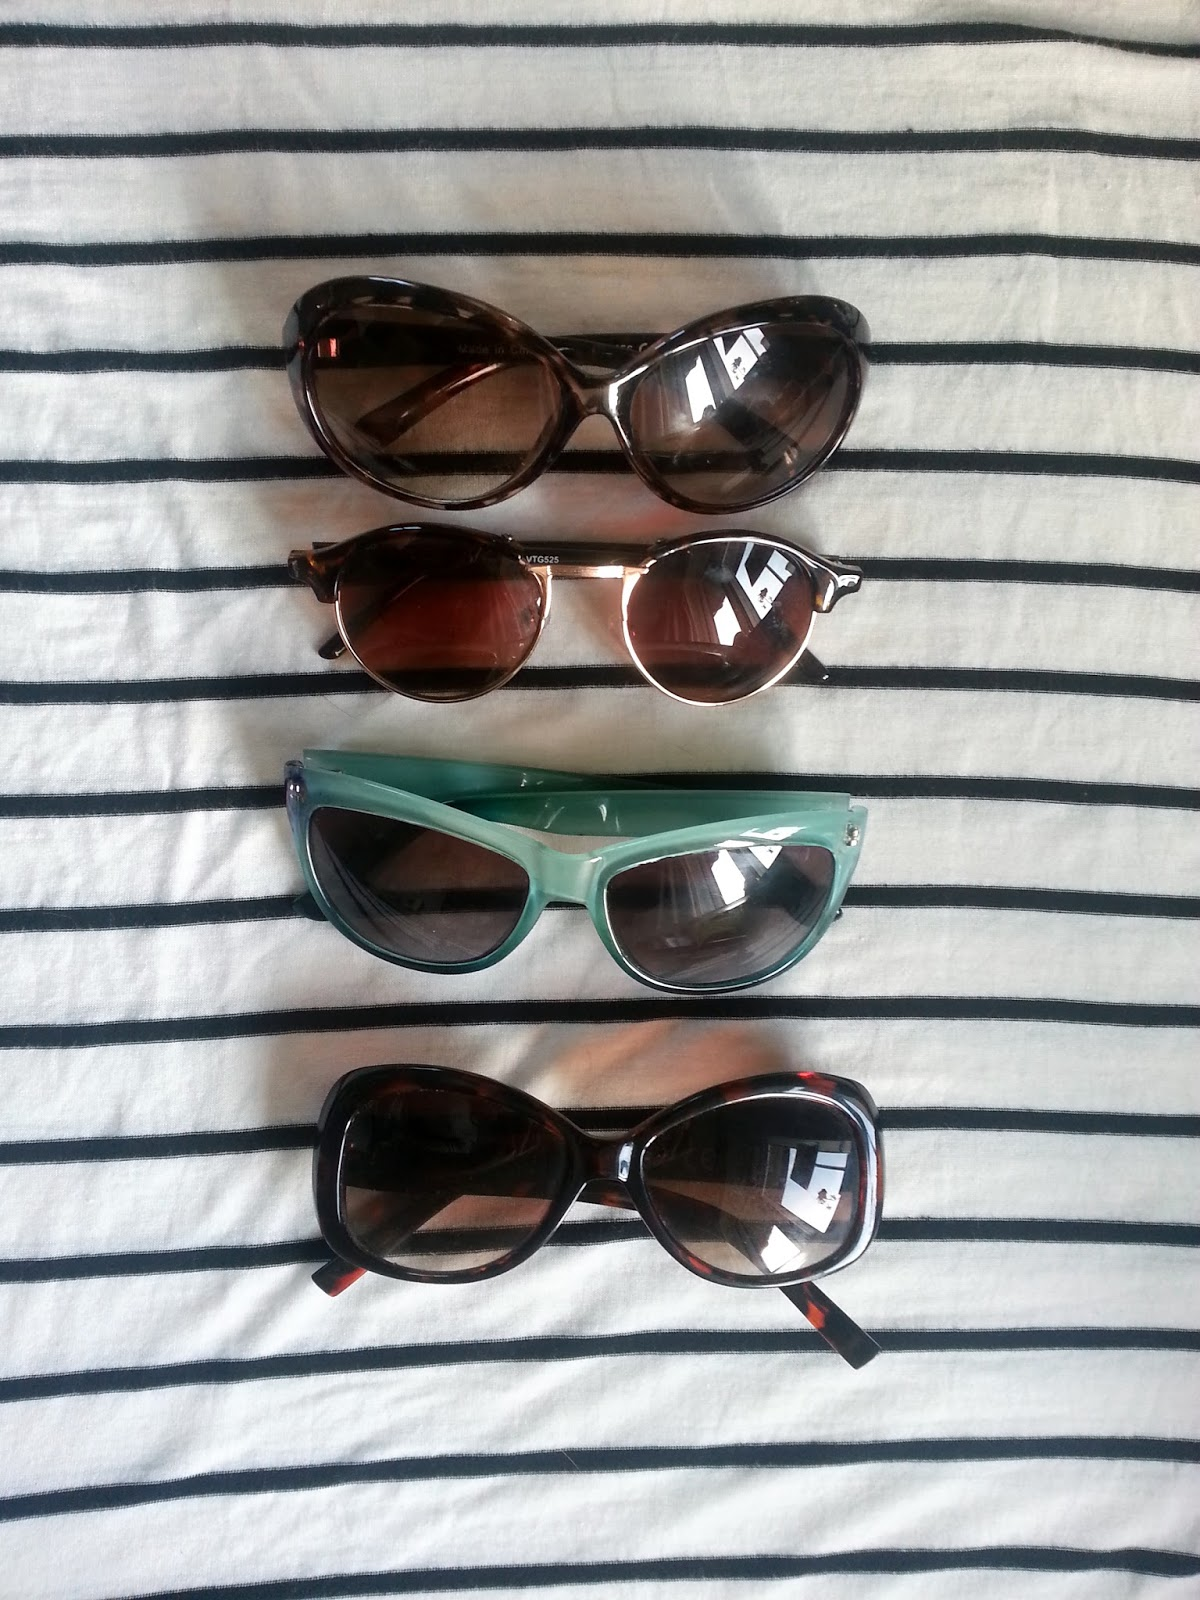 sunglasses collection